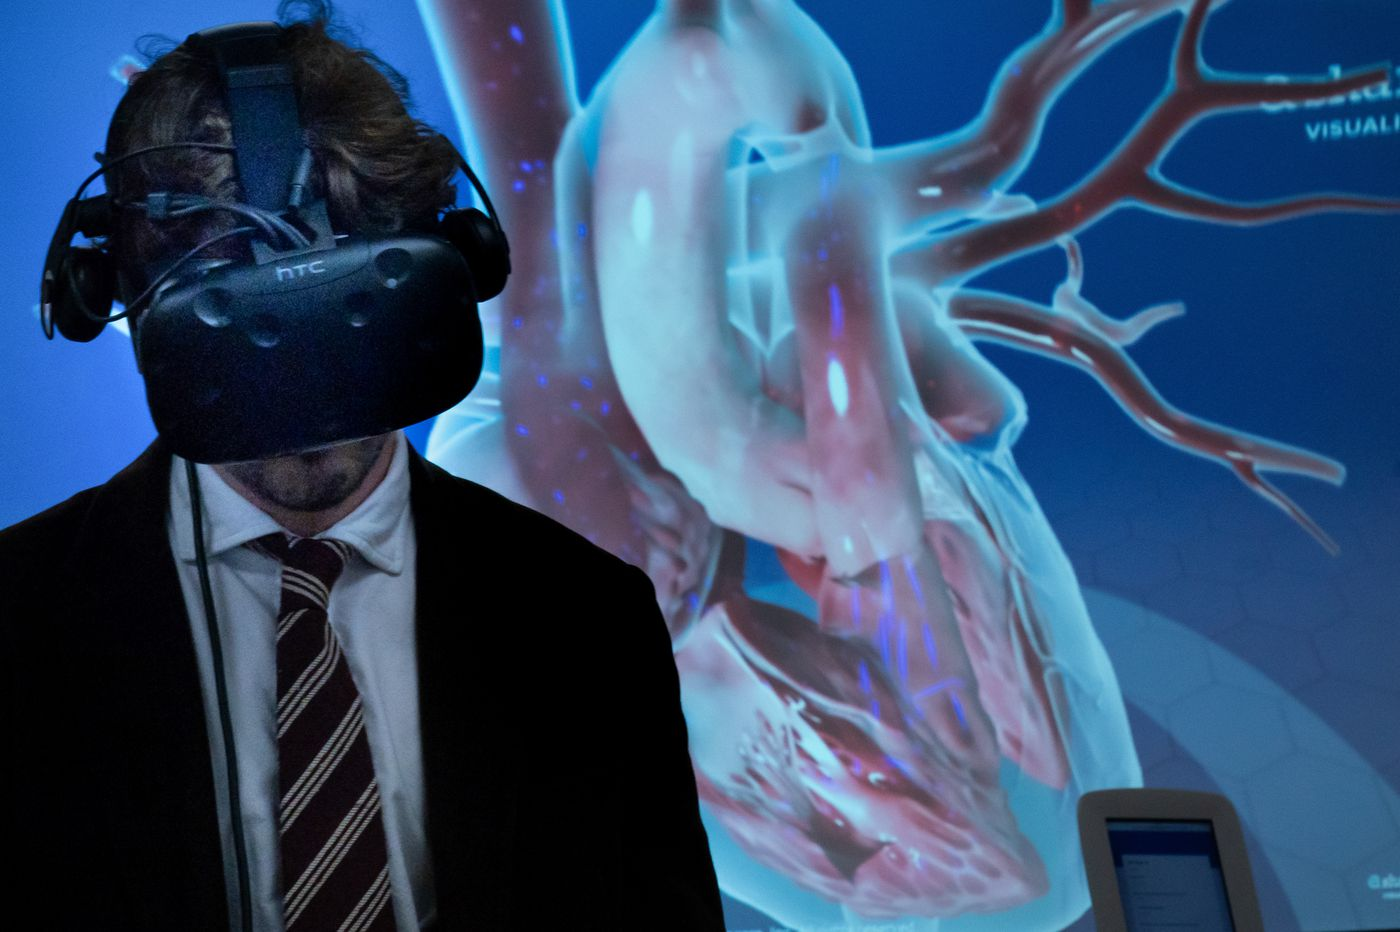 Virtual reality is more than a game at local hospitals